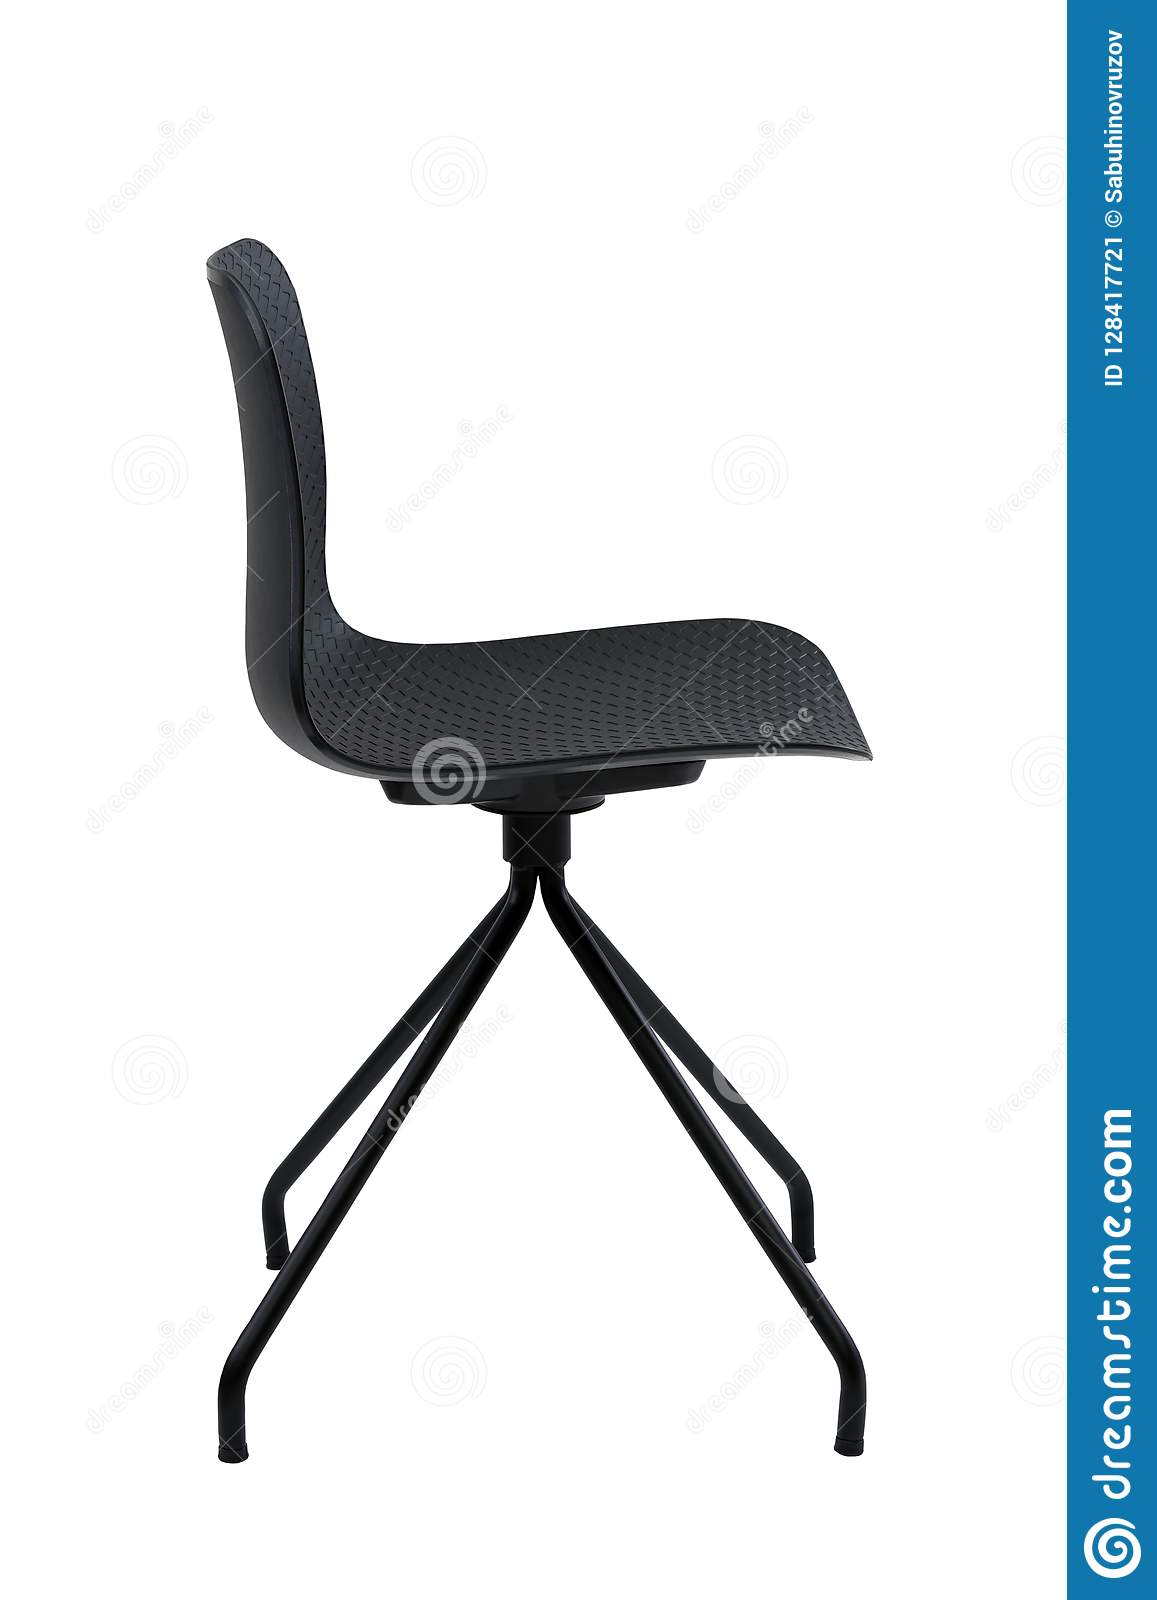 Peachy Black Office Chair Isolated On White Modern Chair On White Caraccident5 Cool Chair Designs And Ideas Caraccident5Info